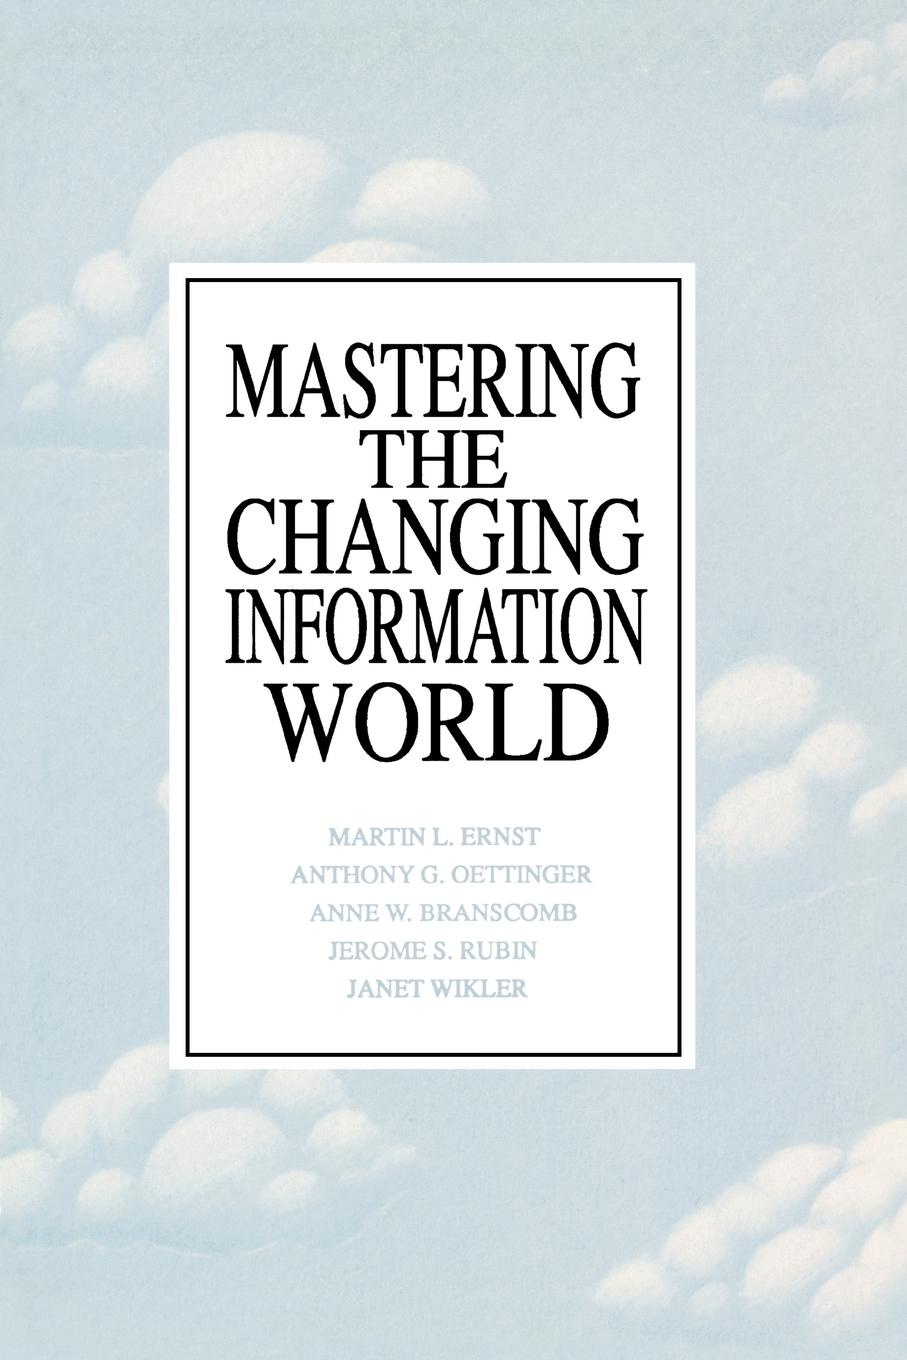 Martin L. Ernst, Anthony G. Oettinger, Anne W. Branscomb Mastering the Changing Information World